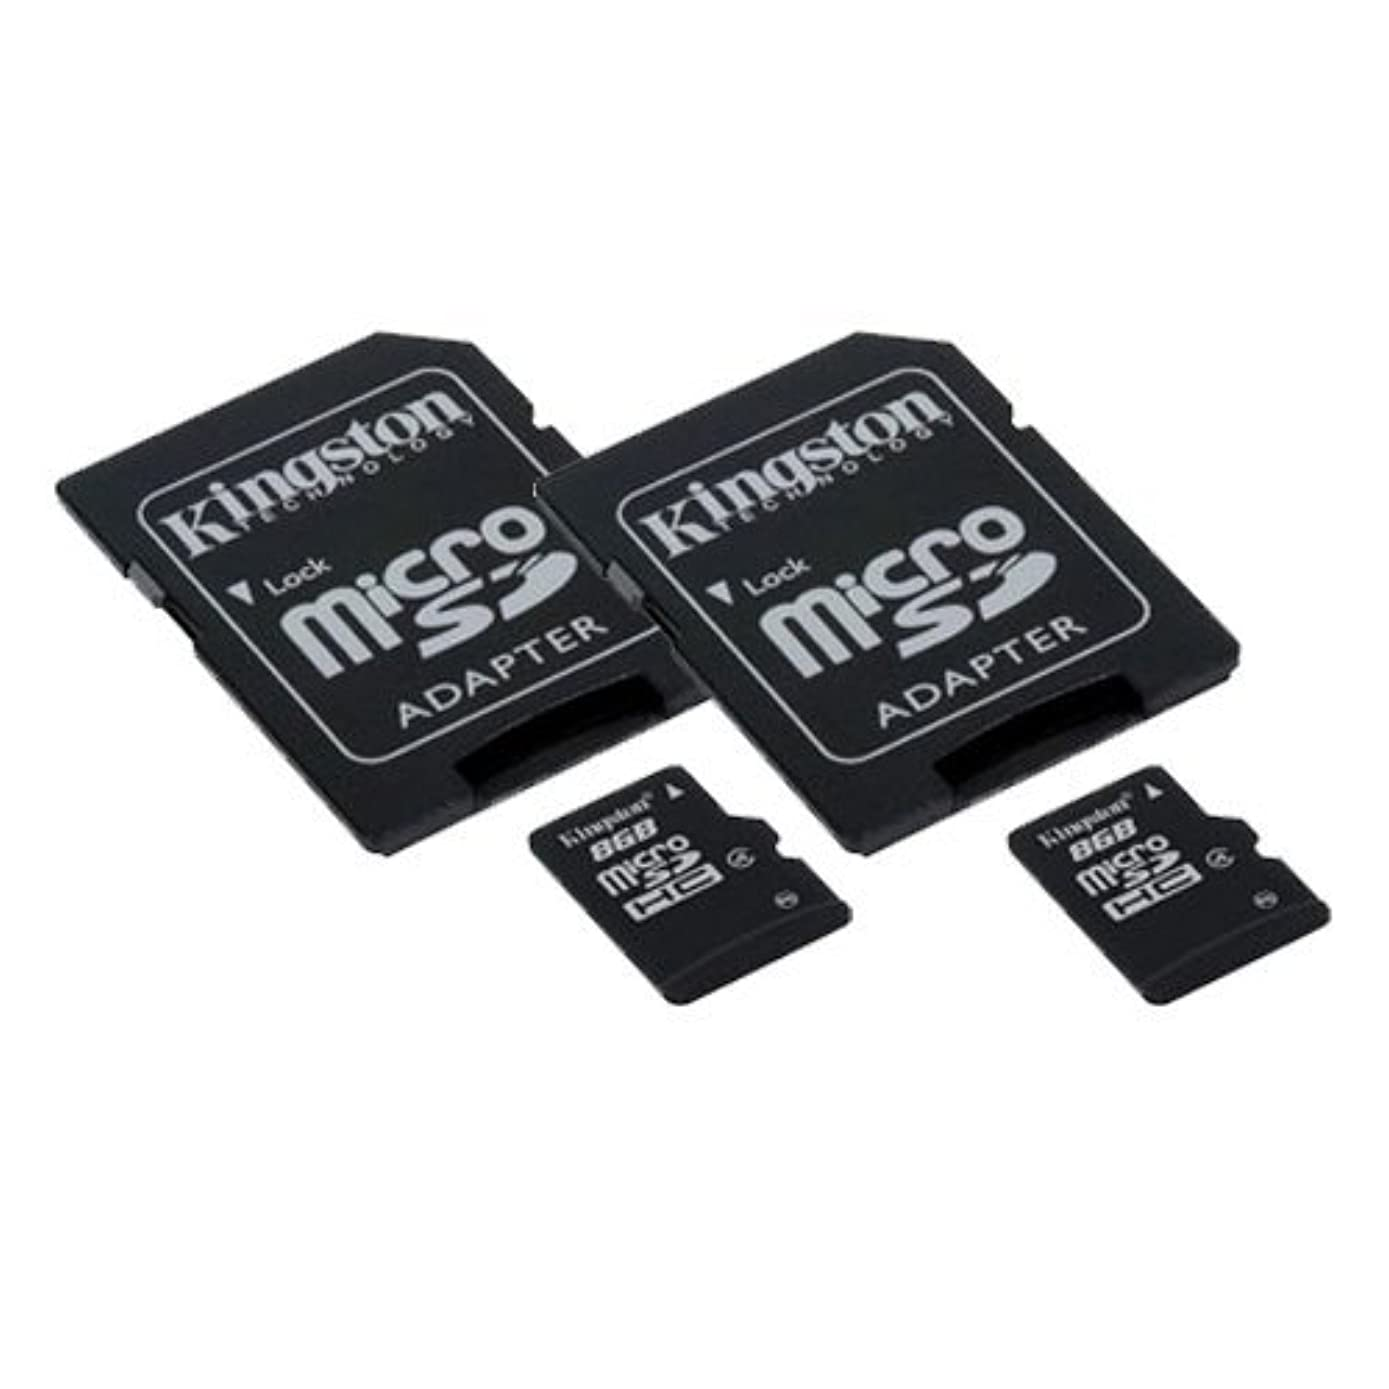 HUBSAN H501S X4 FPV Quadcopter Drone Memory Card 2 x 8GB microSDHC Memory Card with SD Adapter (2 Pack)